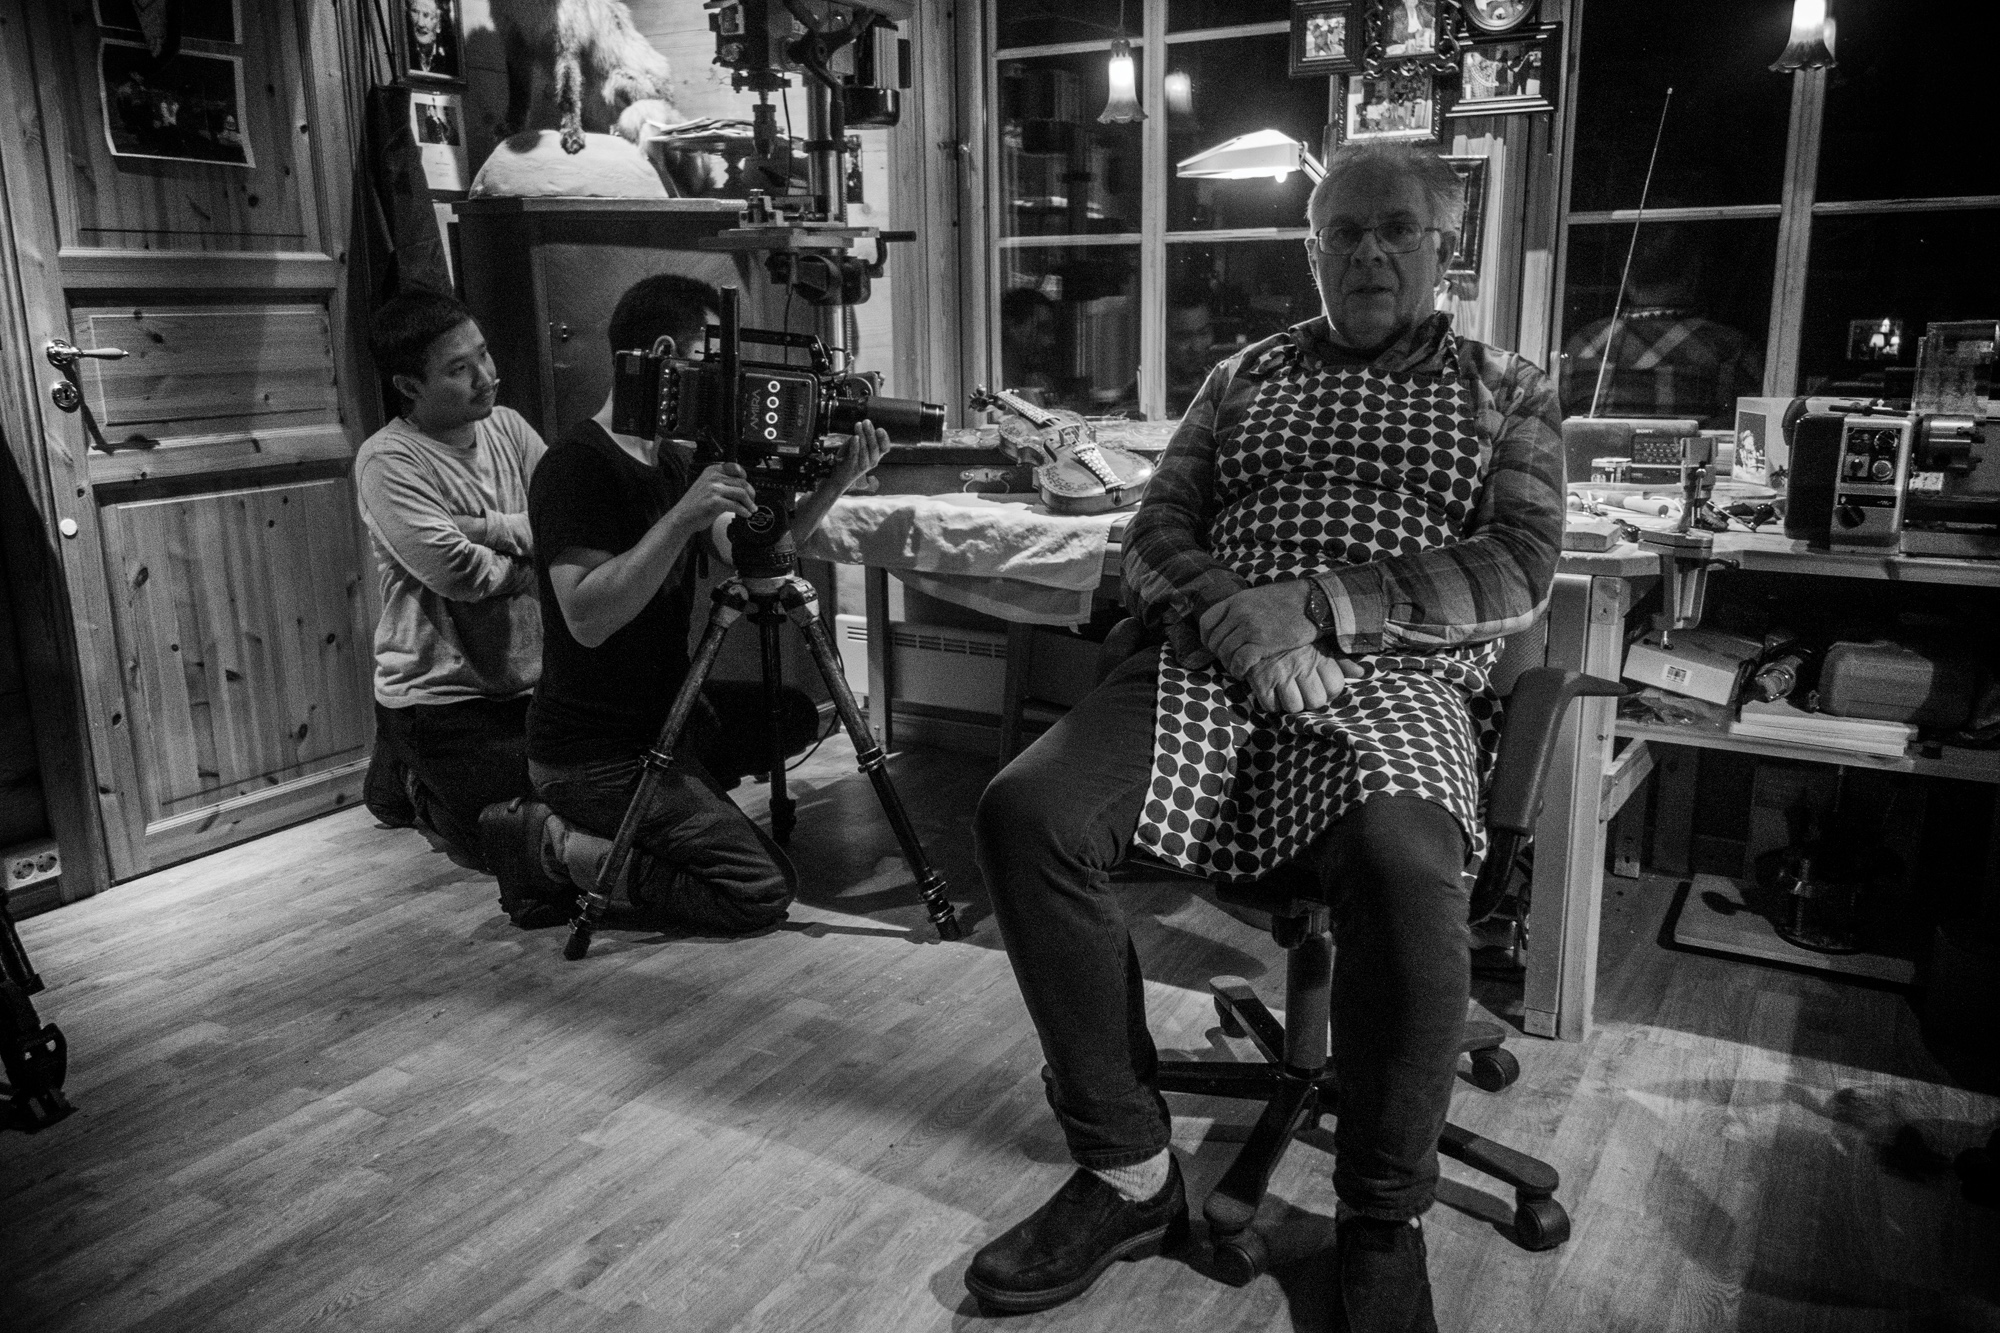 Filming the fiddle-maker. バイオリンメーカーの撮影。